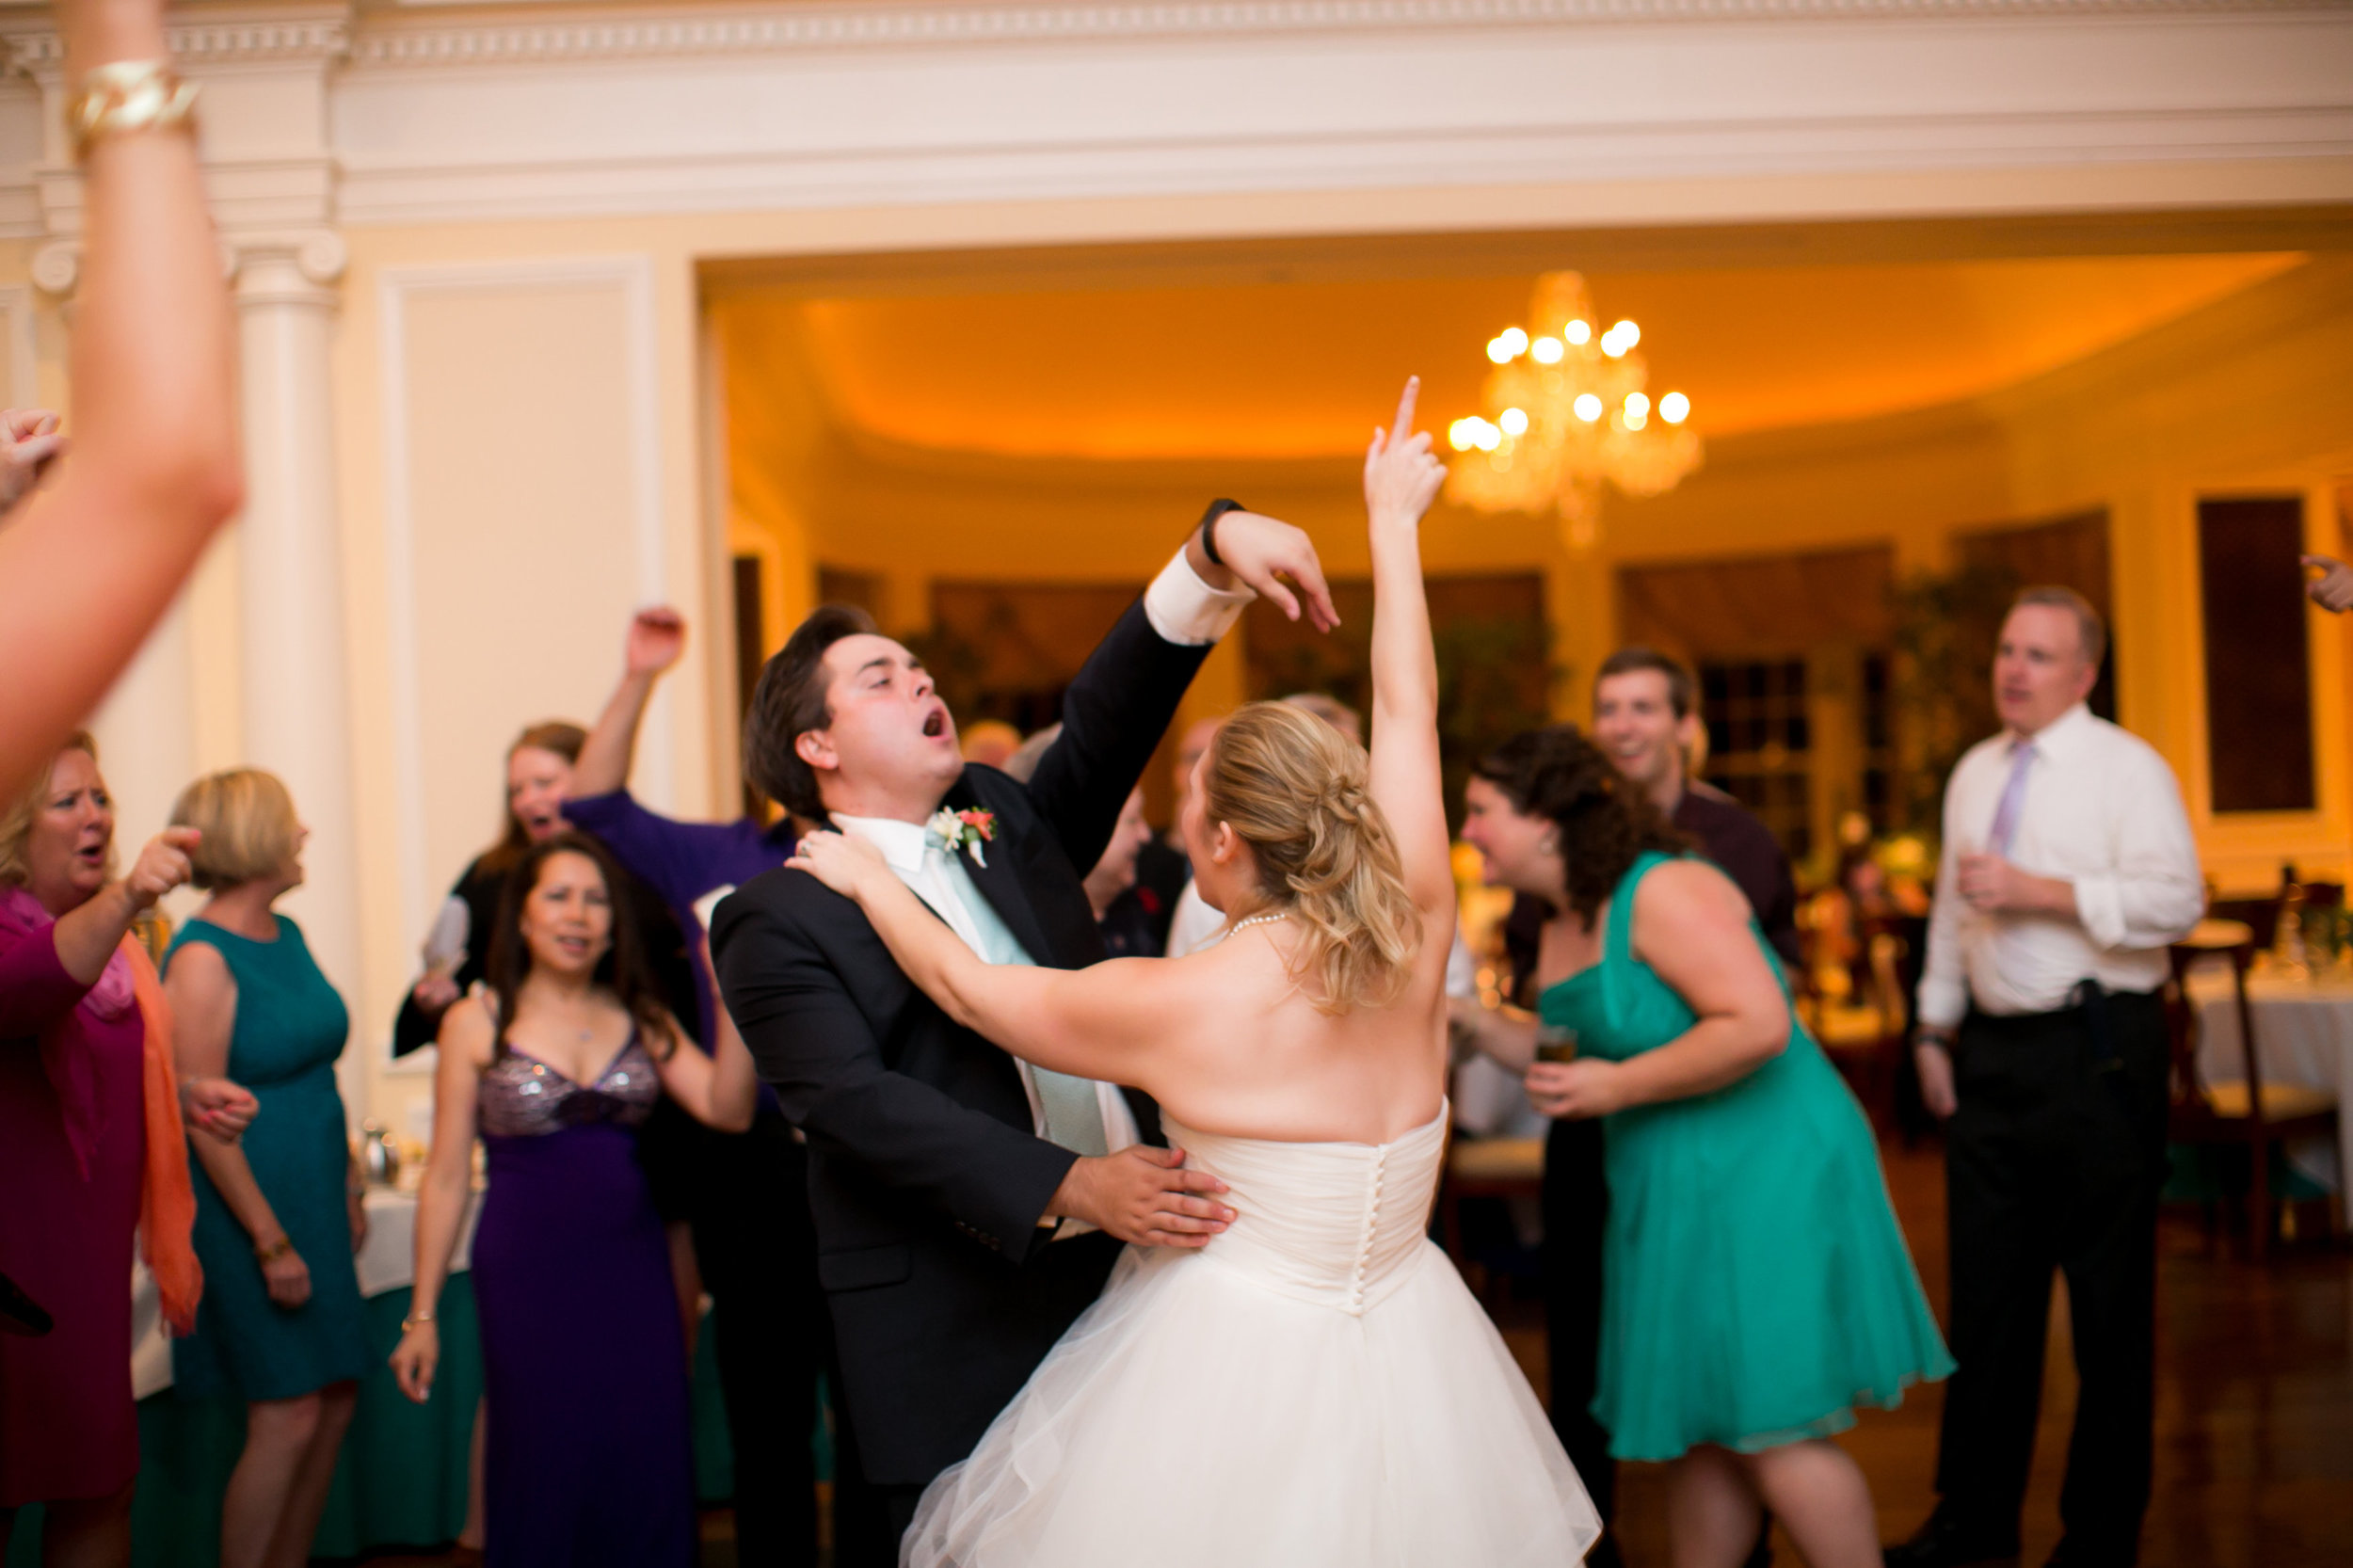 Vness-Photography-Chevy-Chase-Country-Club-A&R-Wedding-898.jpg